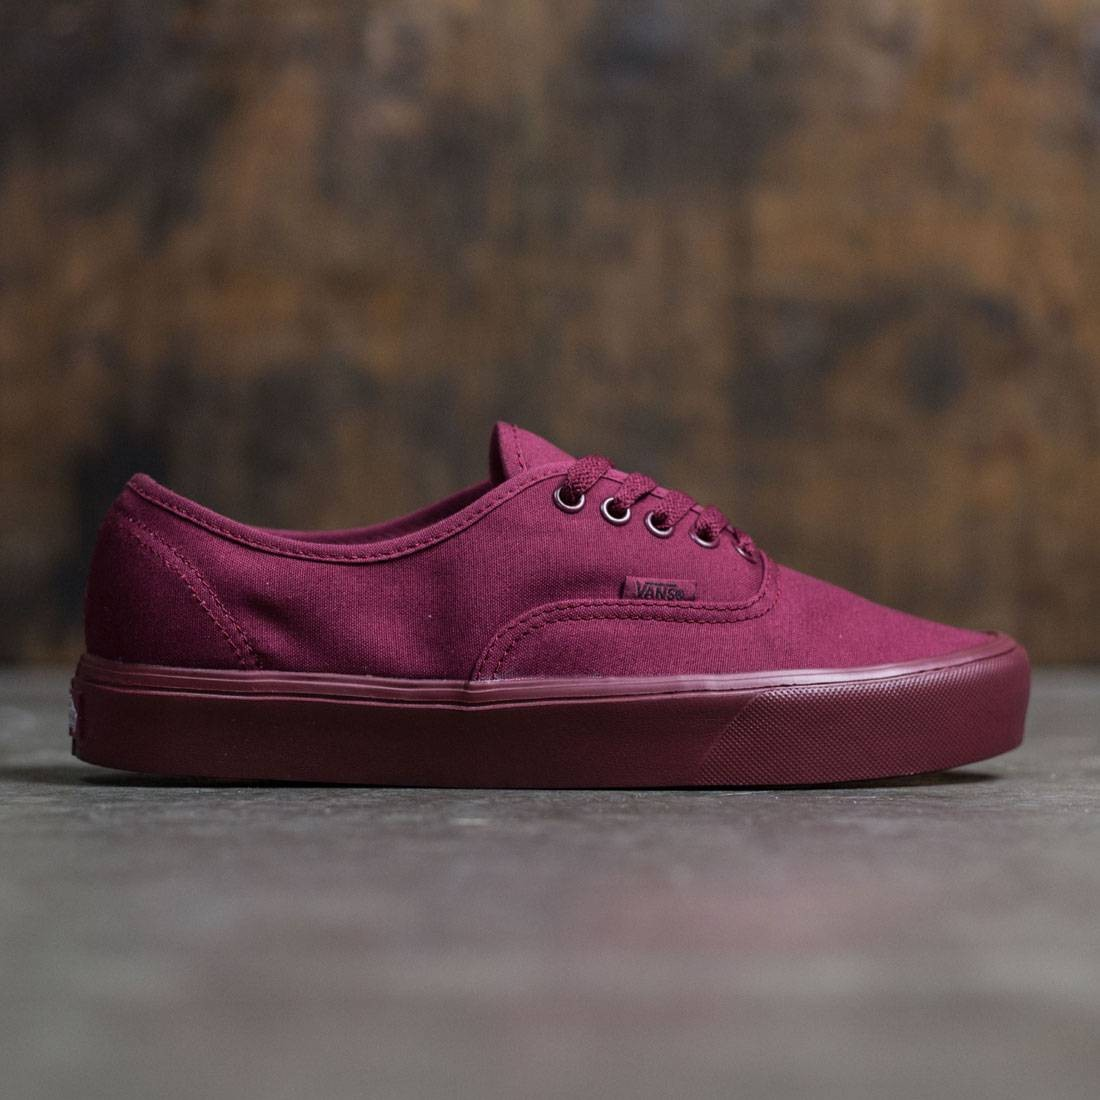 vans authentic skate shoe burgundy monochrome